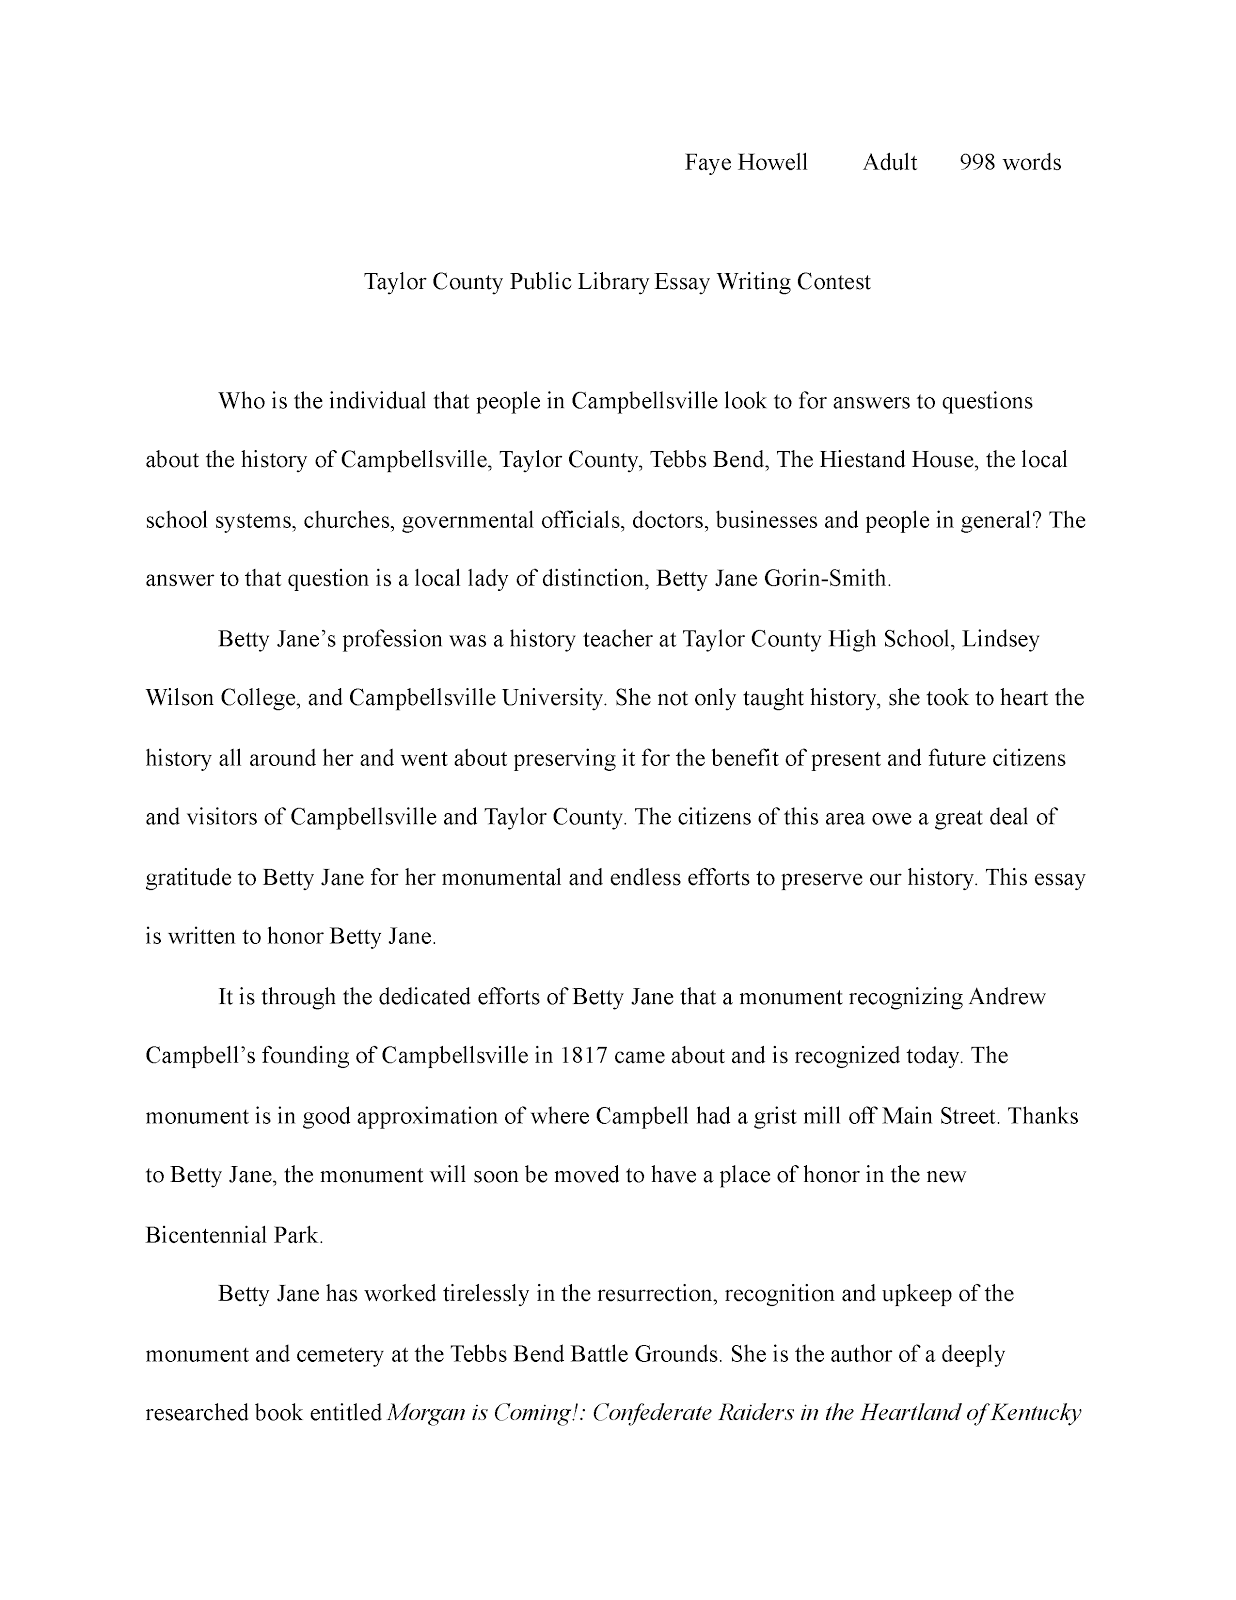 006 Research Paper Essay2bwriting2bcontest12bhowell Art History Amazing Examples Full